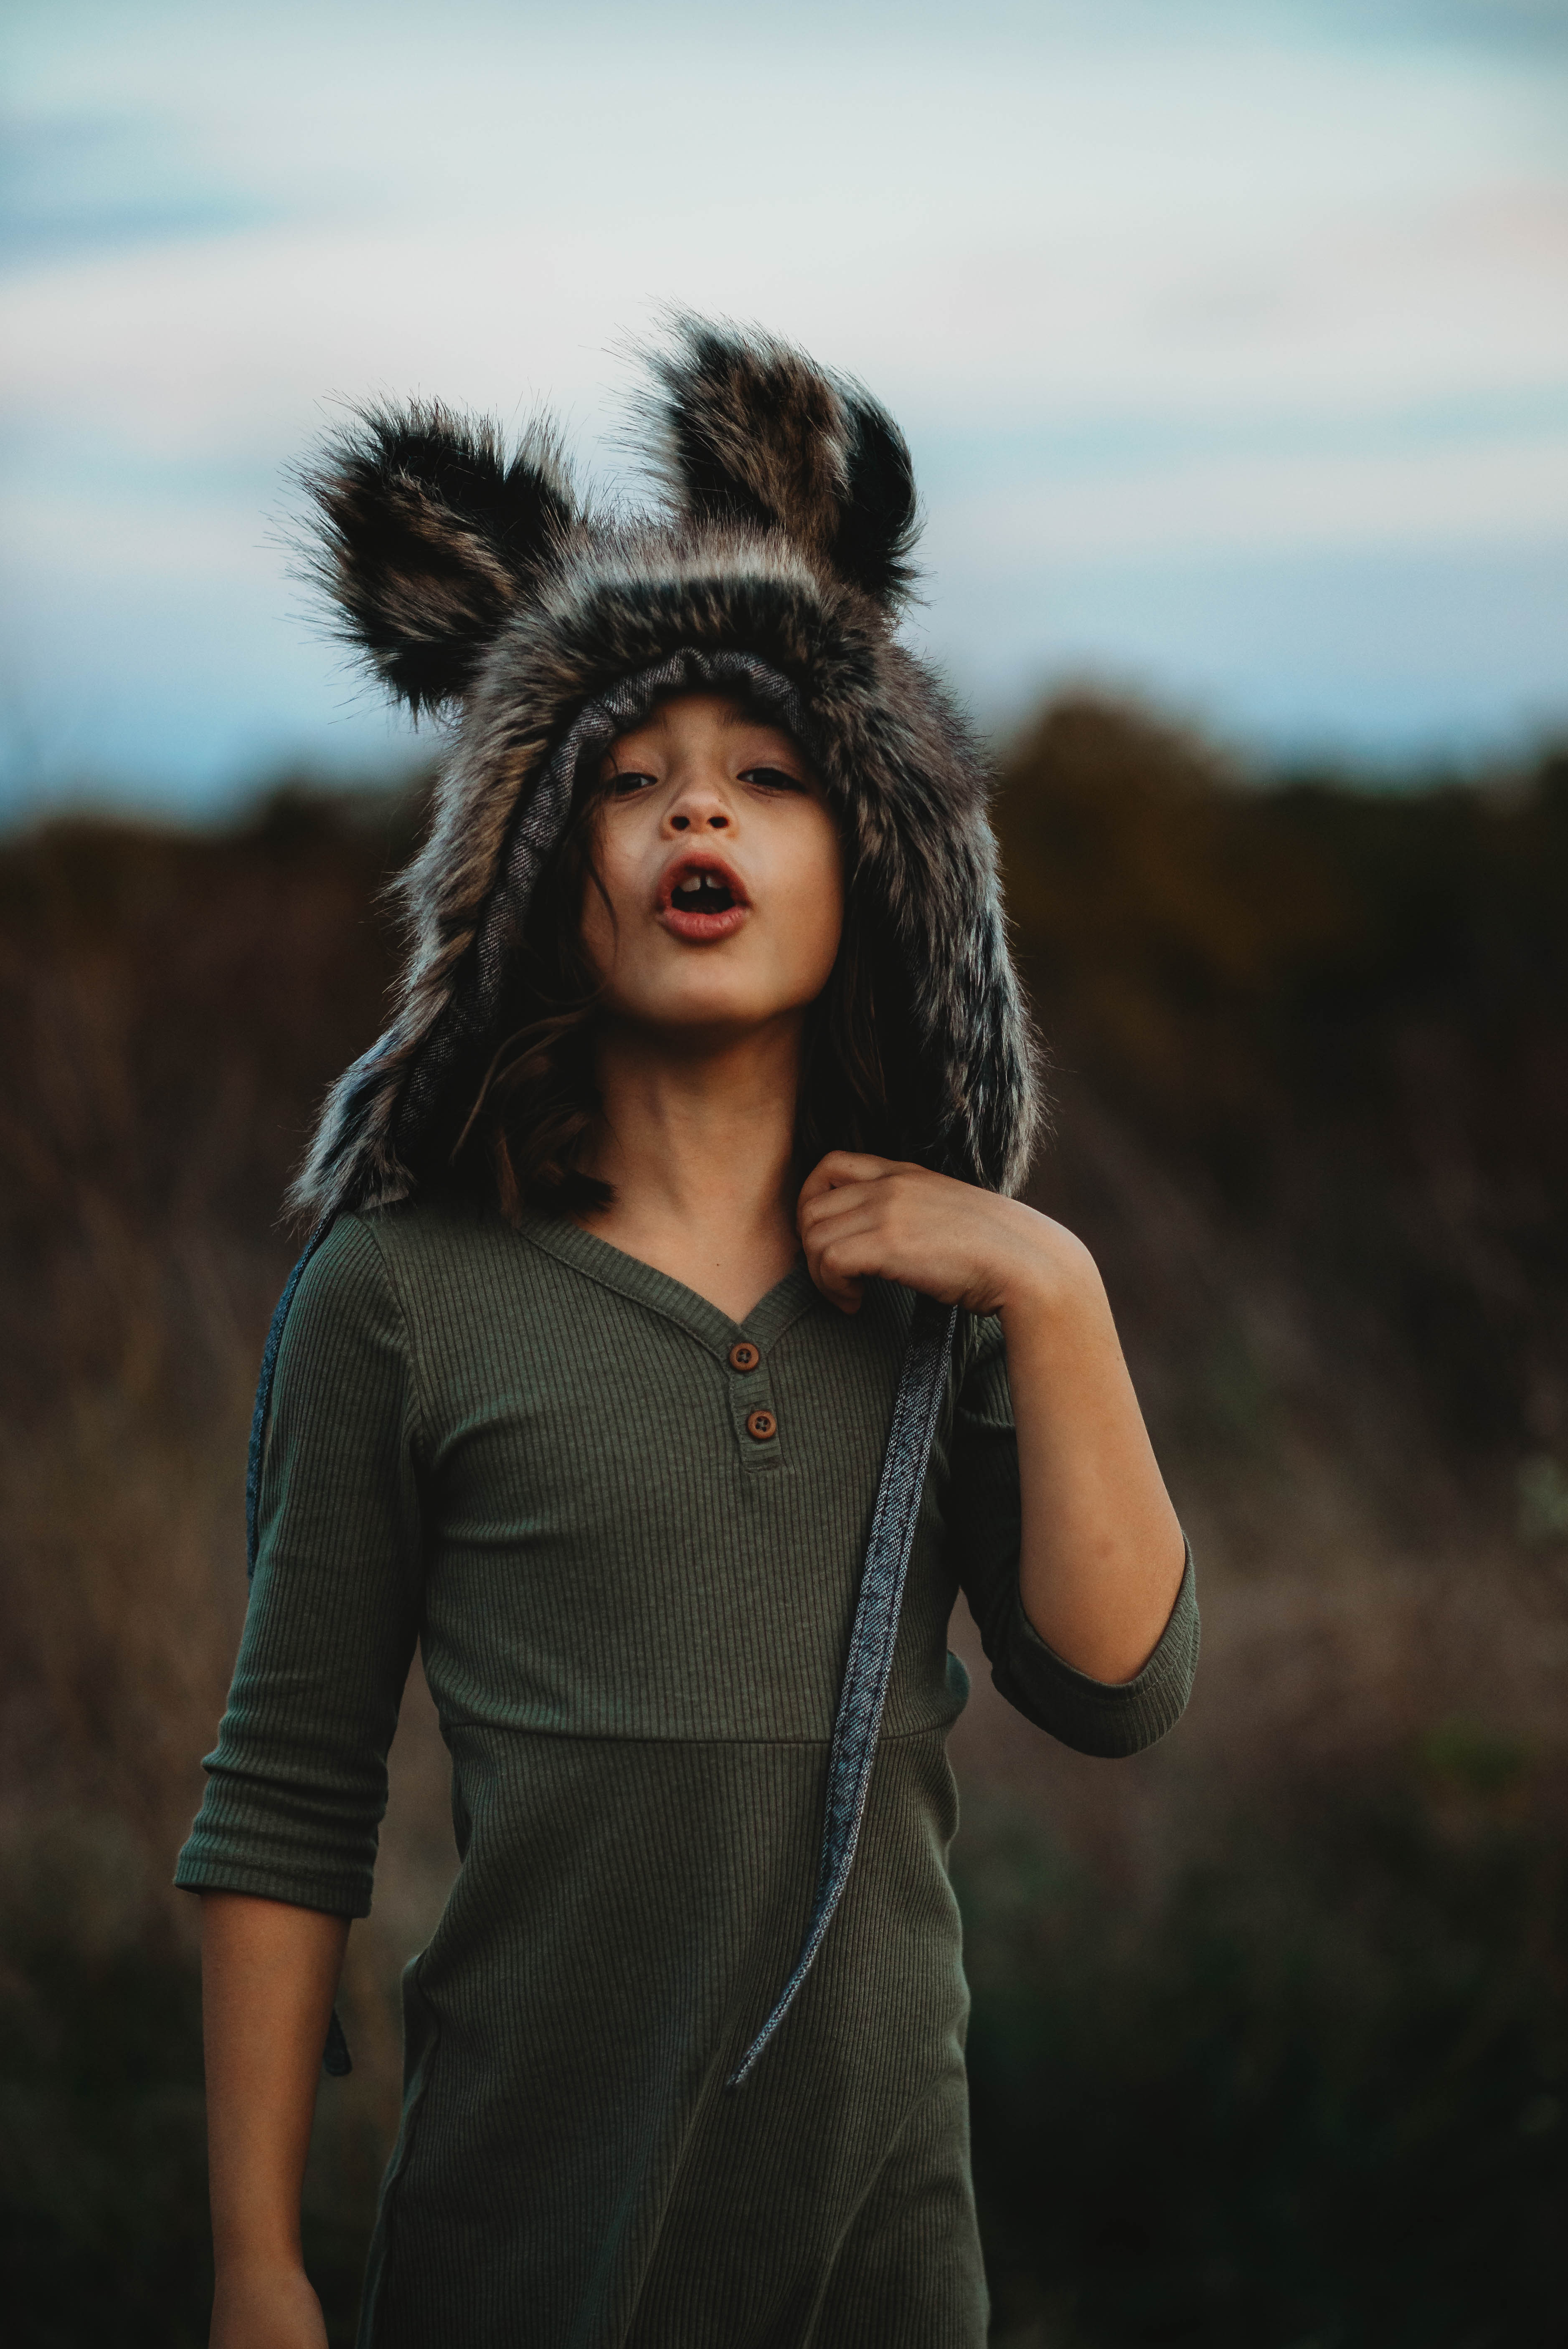 Young girl in green dress and Native Fable wolf bonnet pretending to howl at the setting sun.